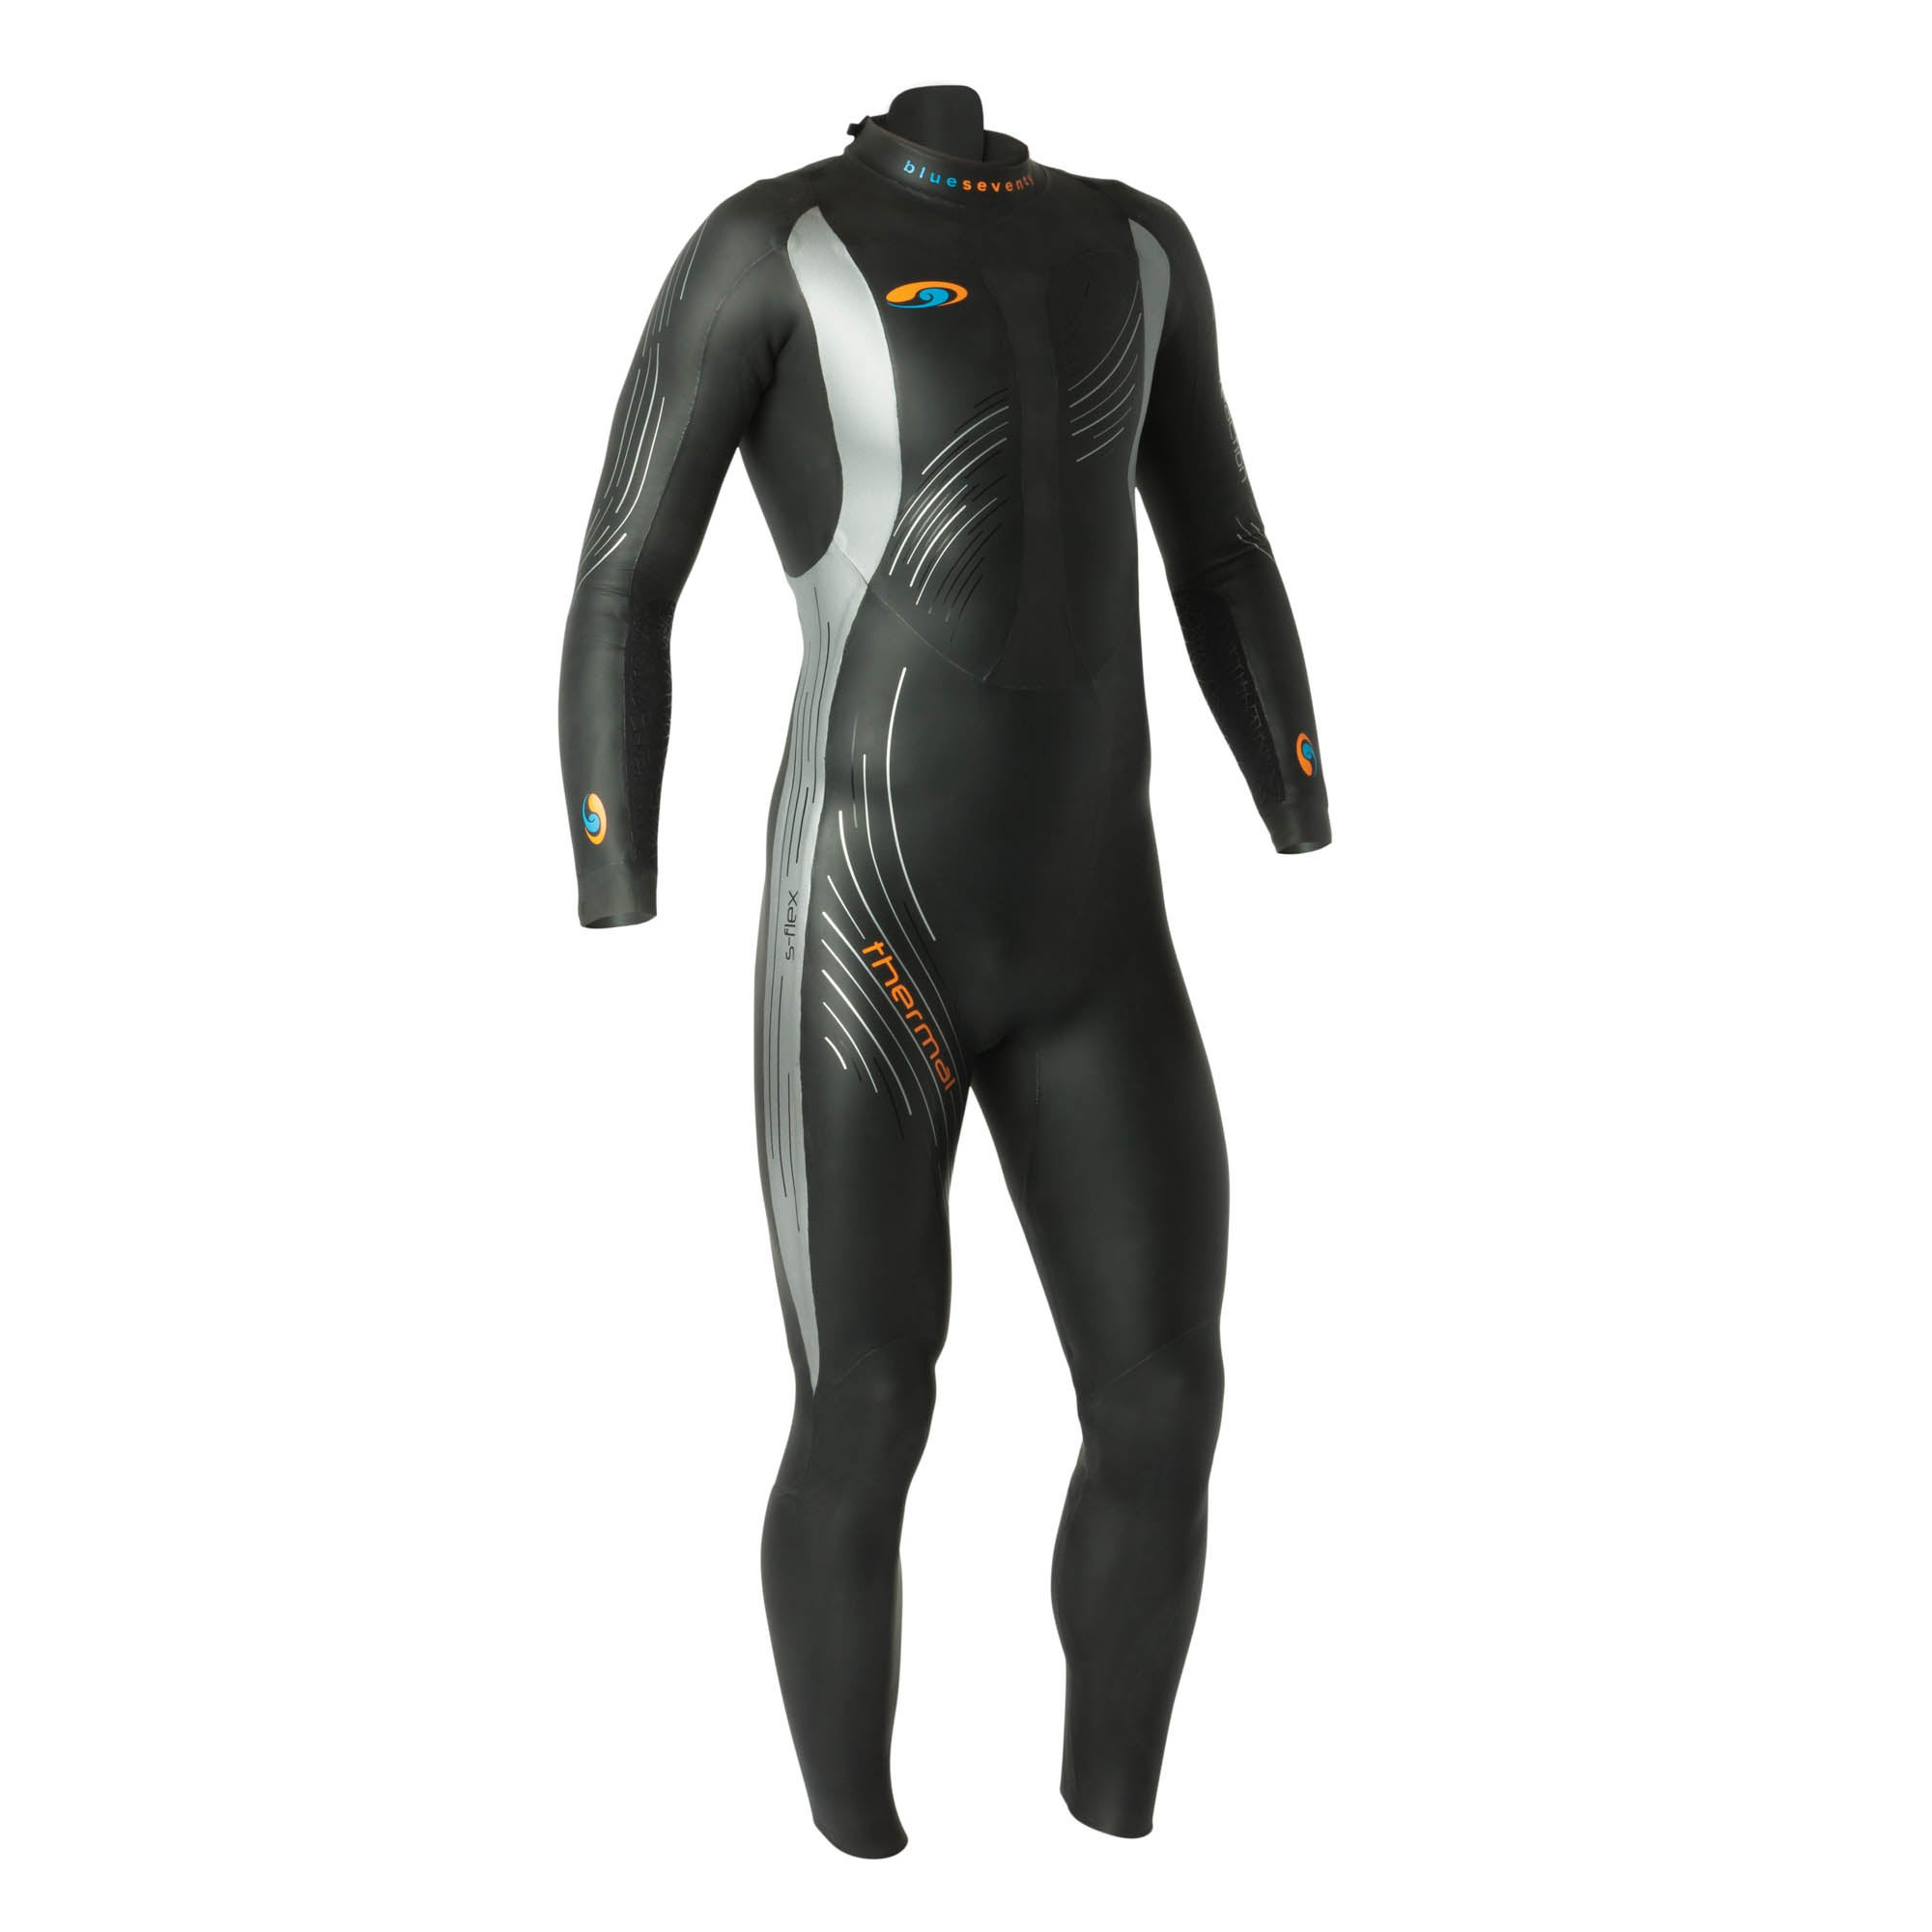 BlueSeventy Thermal Reaction men's wetsuit